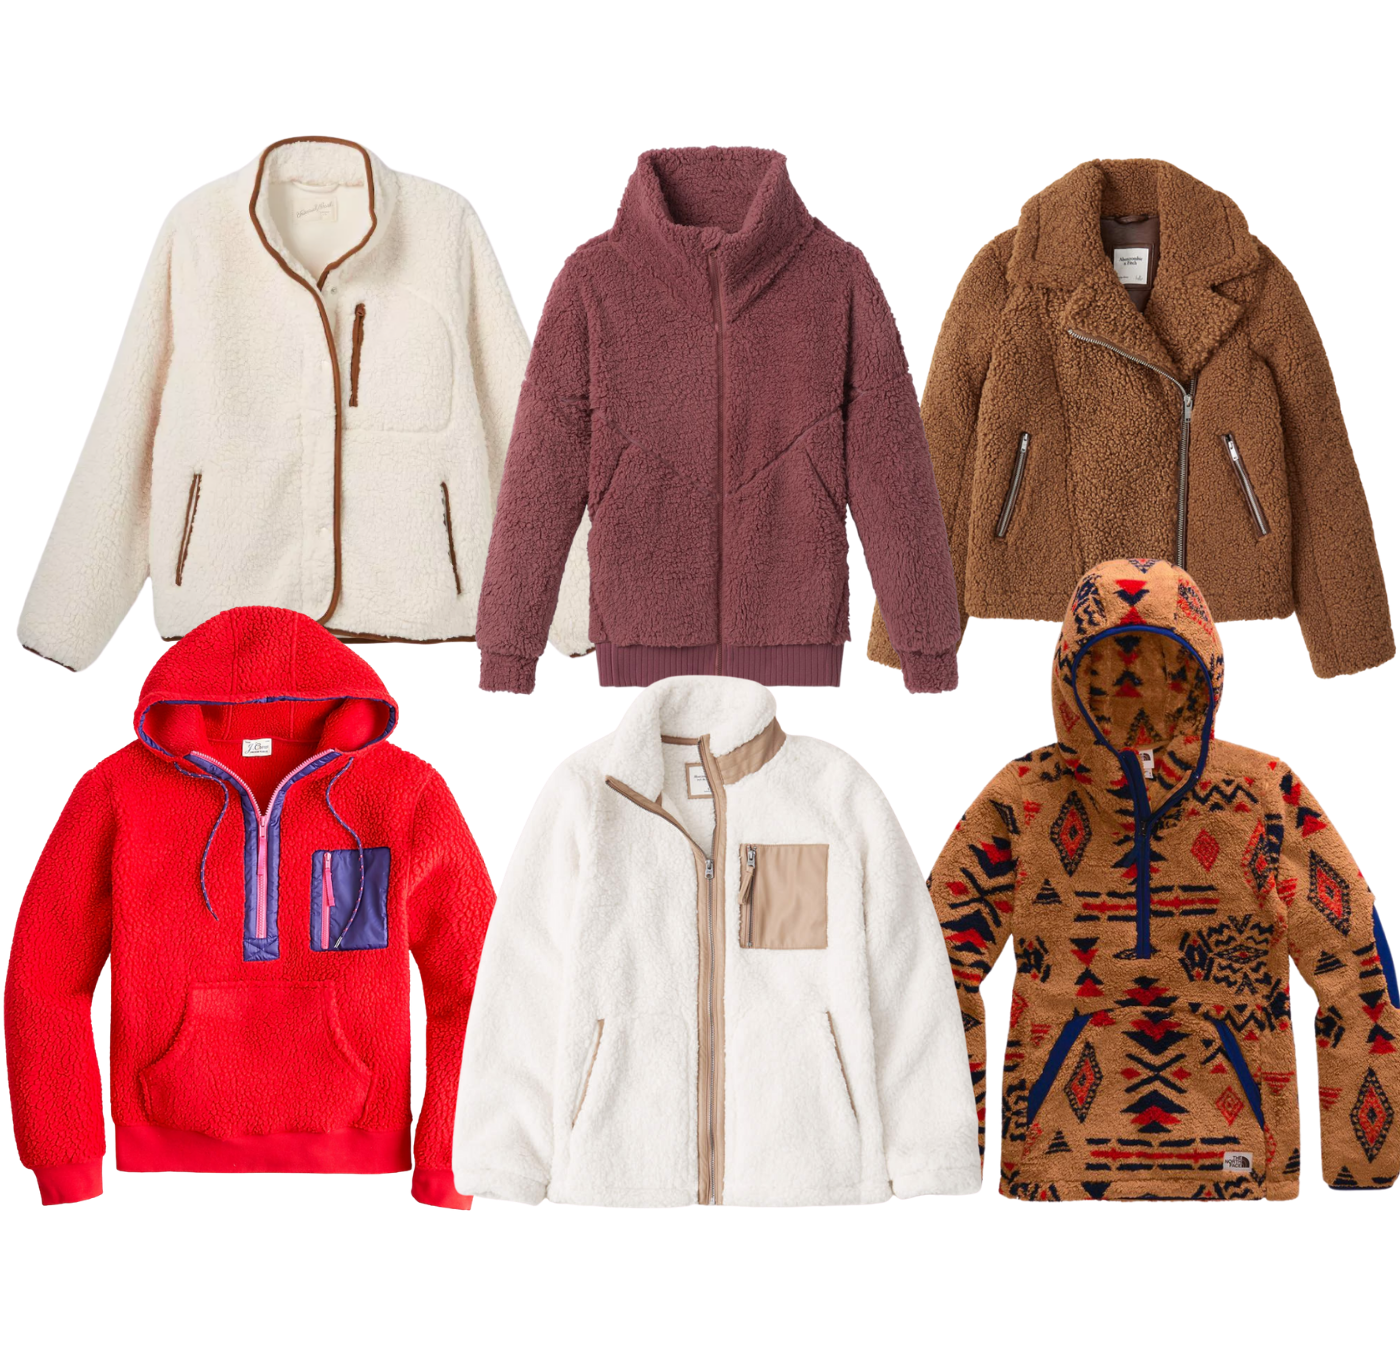 Crushing on Teddy Jackets for Fall